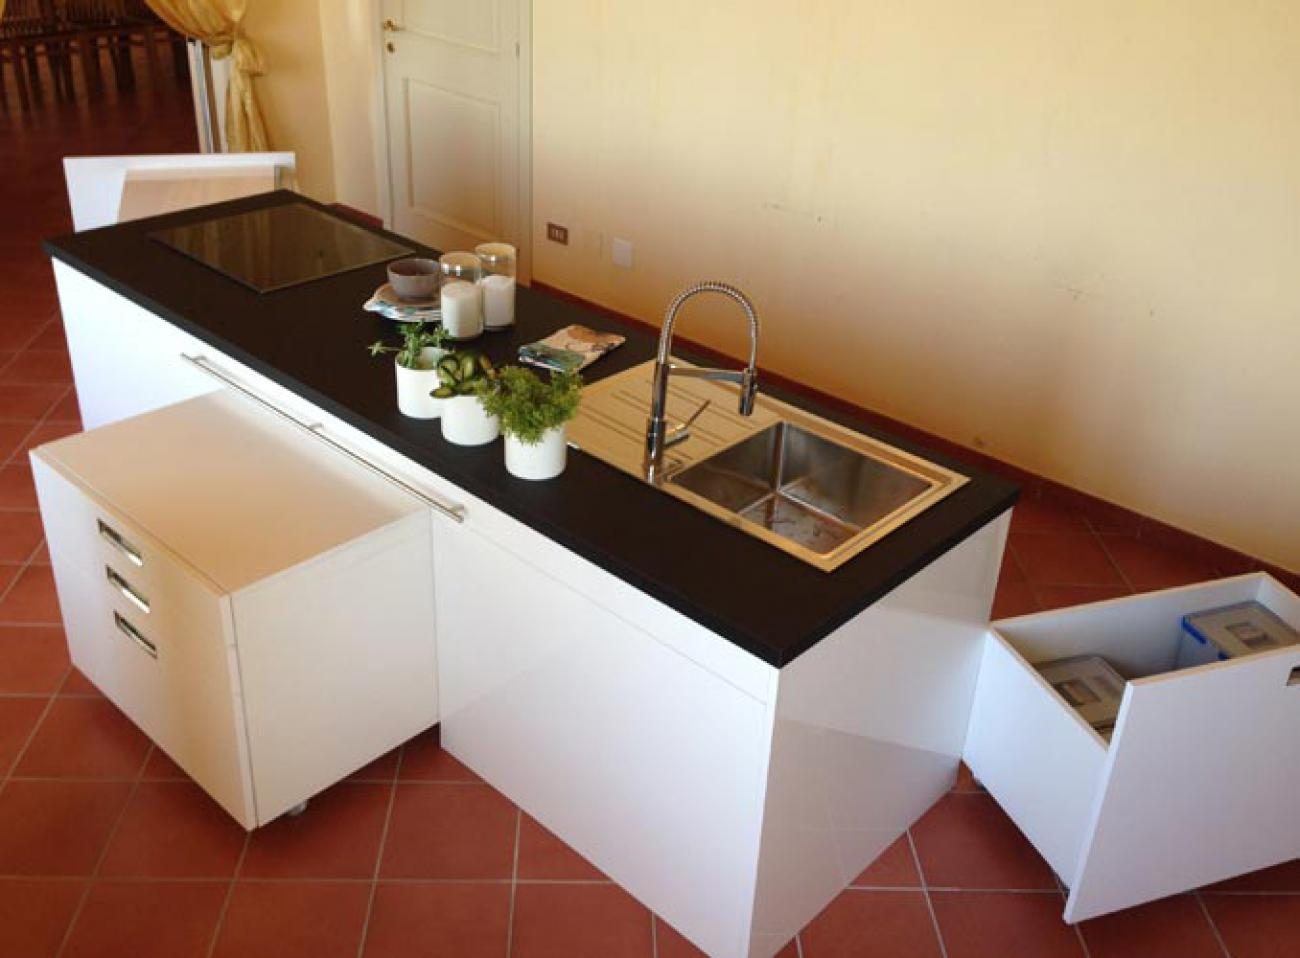 Friendly Kitchen - El prototipo definitivo